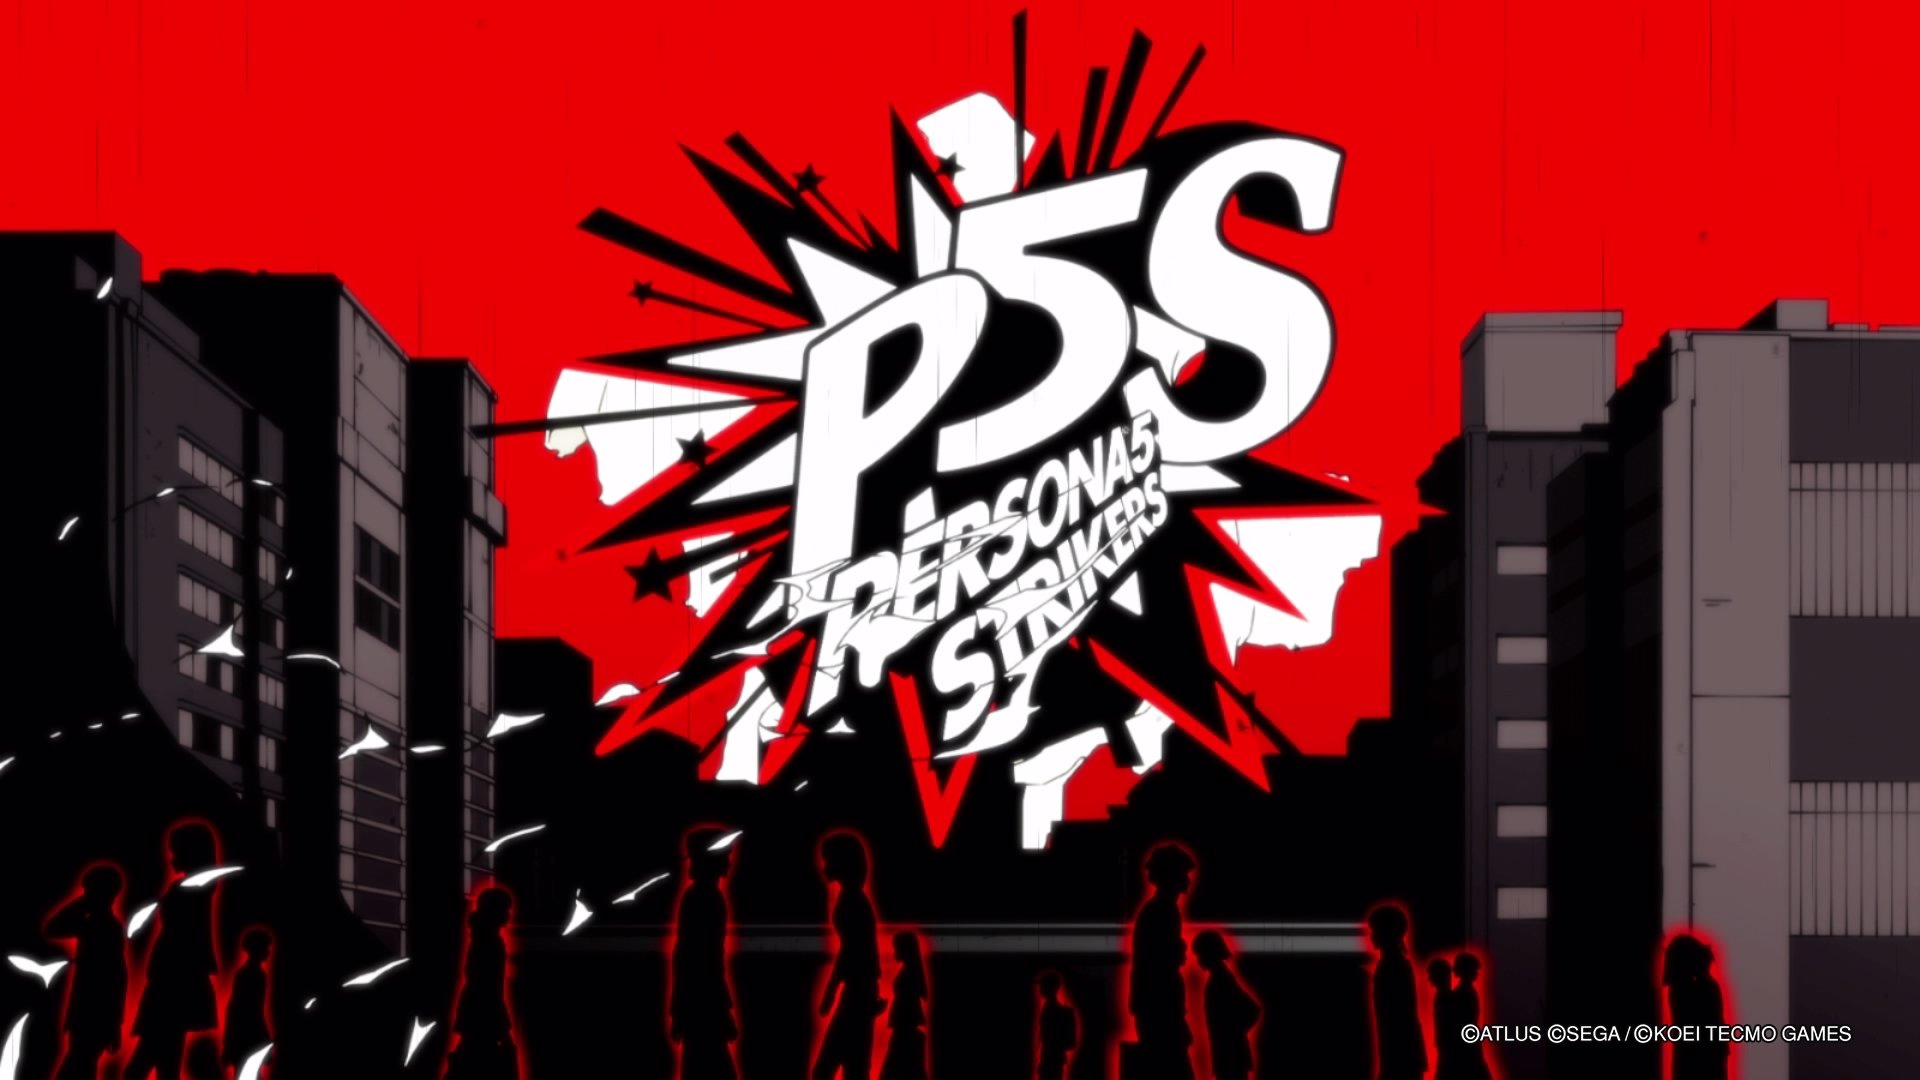 Persona 5 Strikers Guide - Finding, Beating, and Fusing King Frost